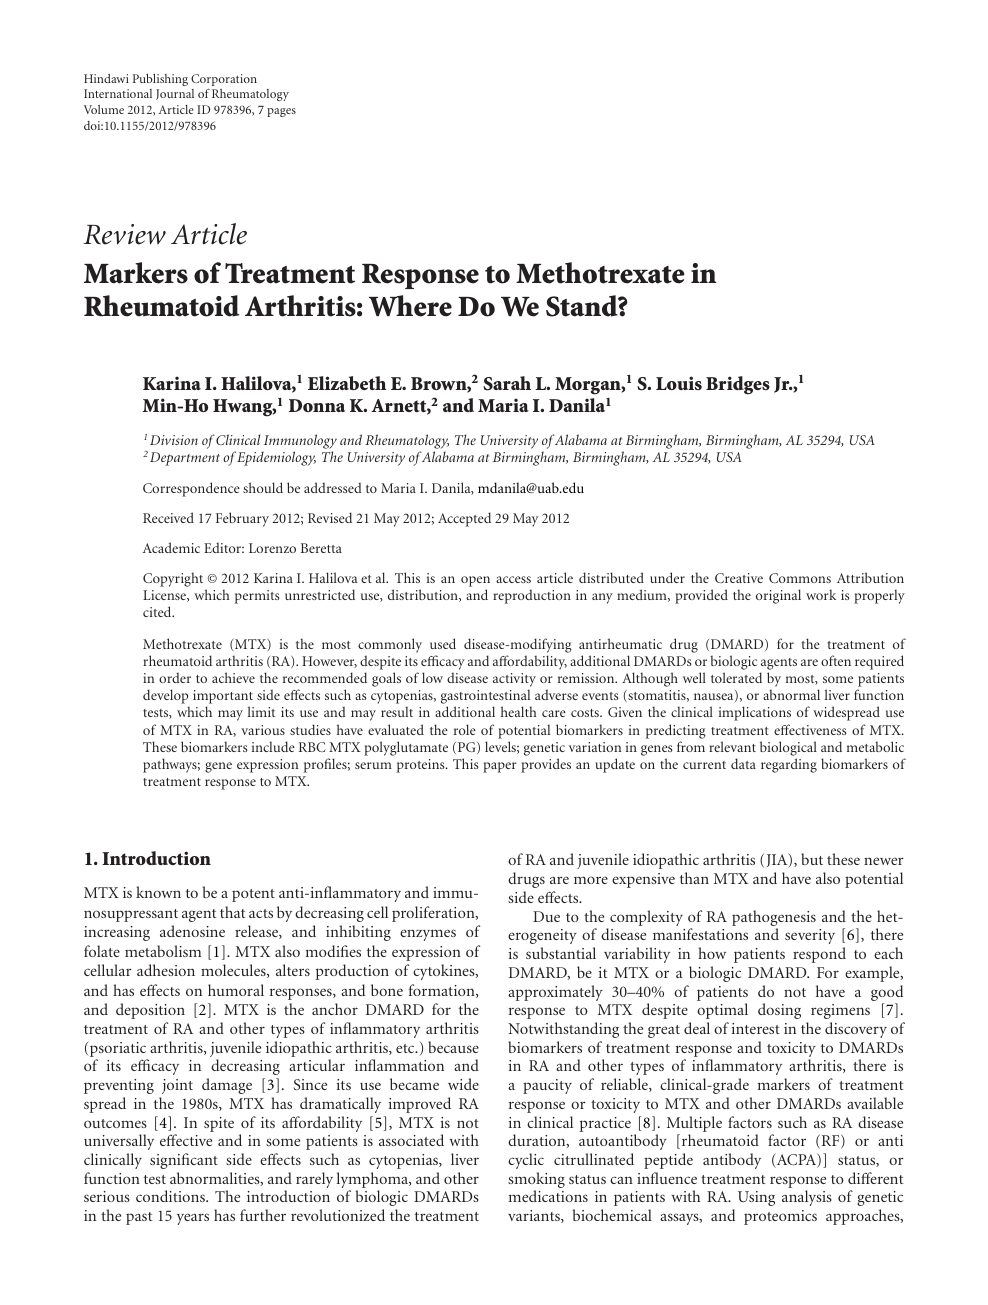 Markers Of Treatment Response To Methotrexate In Rheumatoid Arthritis Where Do We Stand Topic Of Research Paper In Clinical Medicine Download Scholarly Article Pdf And Read For Free On Cyberleninka Open